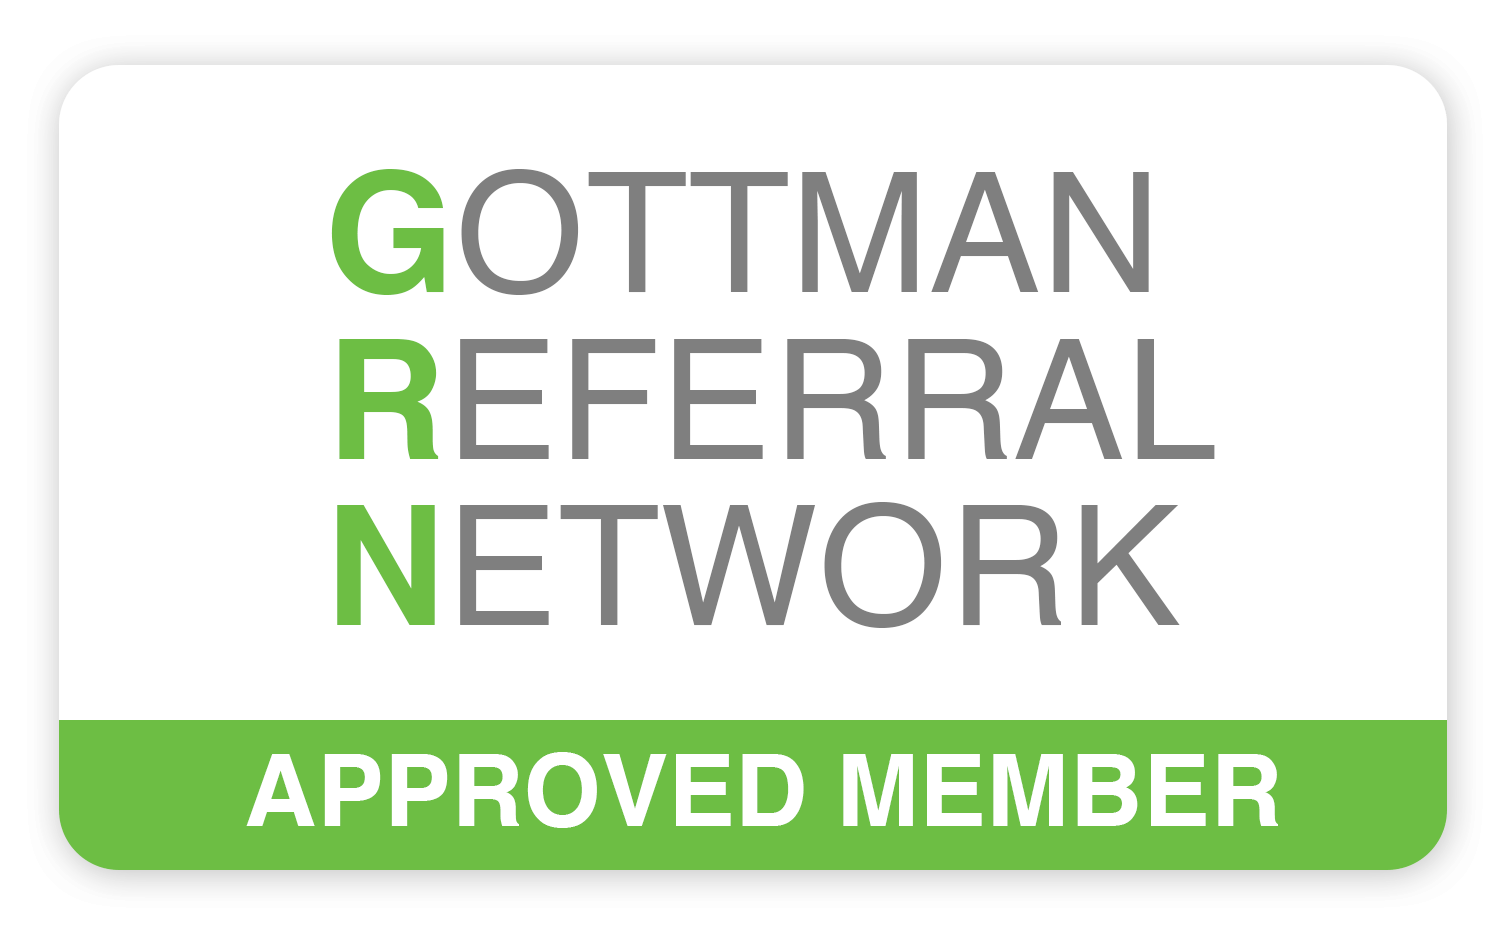 Eugene Kayser, MA, MFT's profile on the Gottman Referral Network